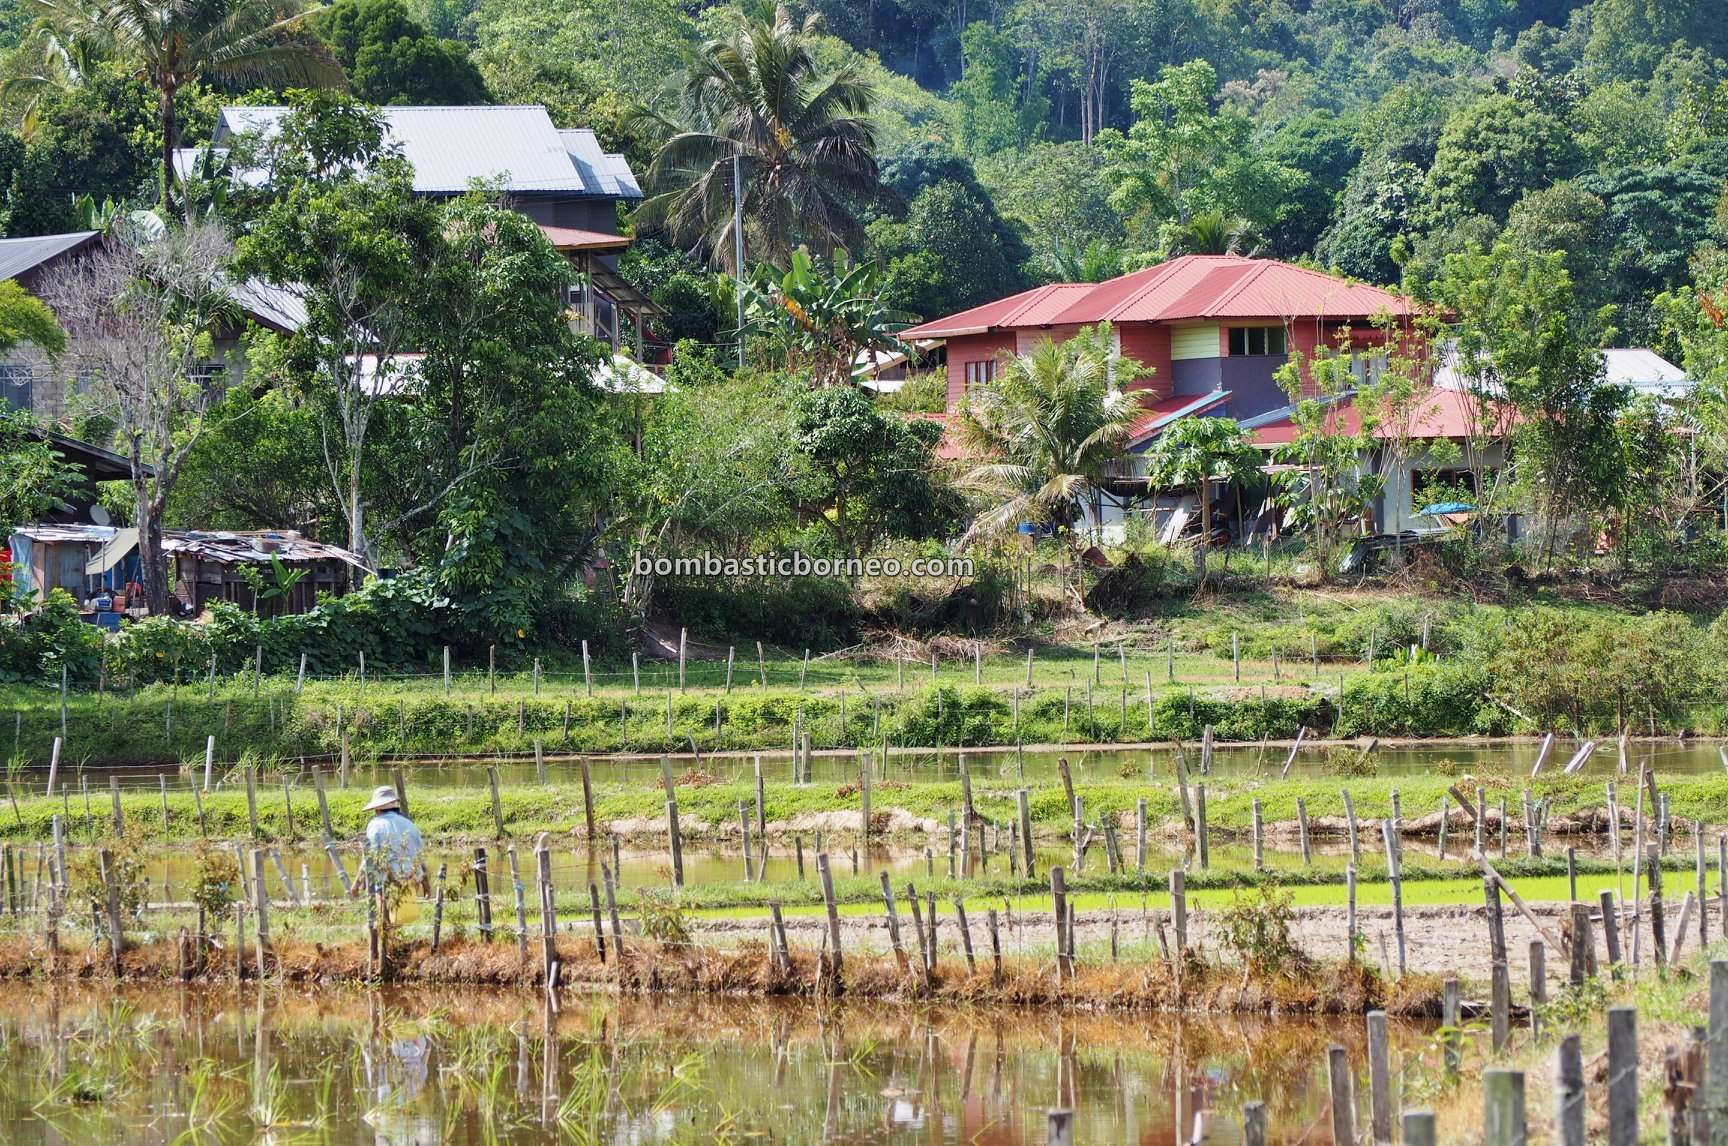 SRI, organic rice, traditional, Interior village, Lawas, Long Langai, Malaysia, Borneo, Lun Bawang, native, dayak, Travel guide, 跨境婆罗洲高原, 马来西亚原住民部落, 砂拉越巴卡拉兰